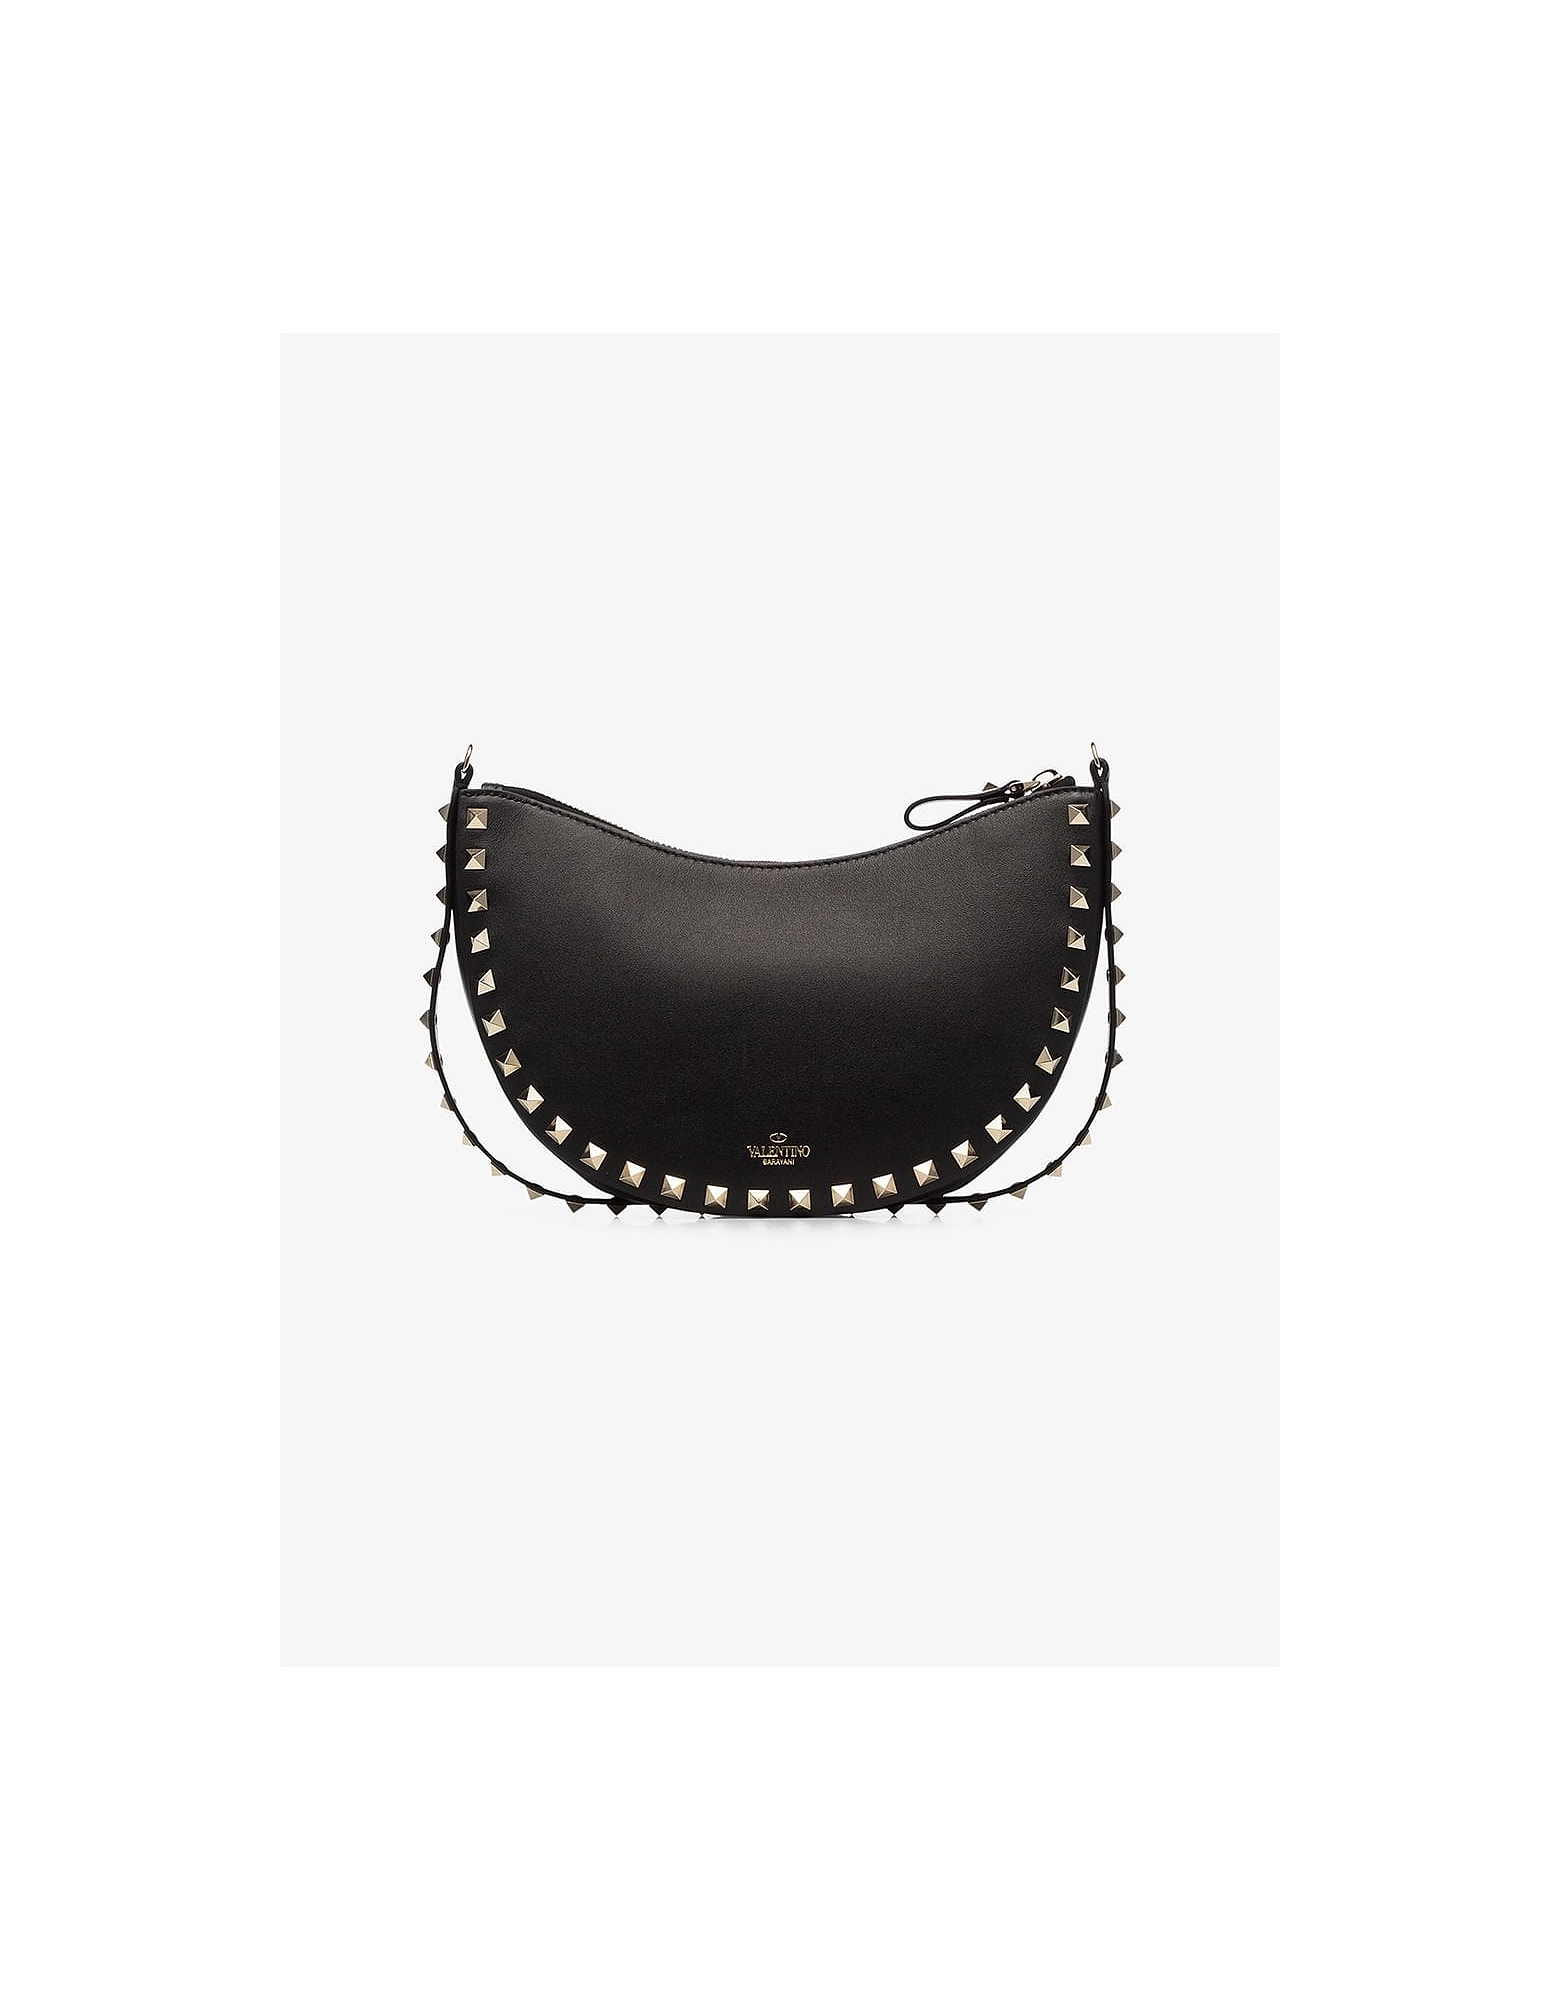 Valentino Designer Handbags, Black Garavani Rockstud Mini Bag